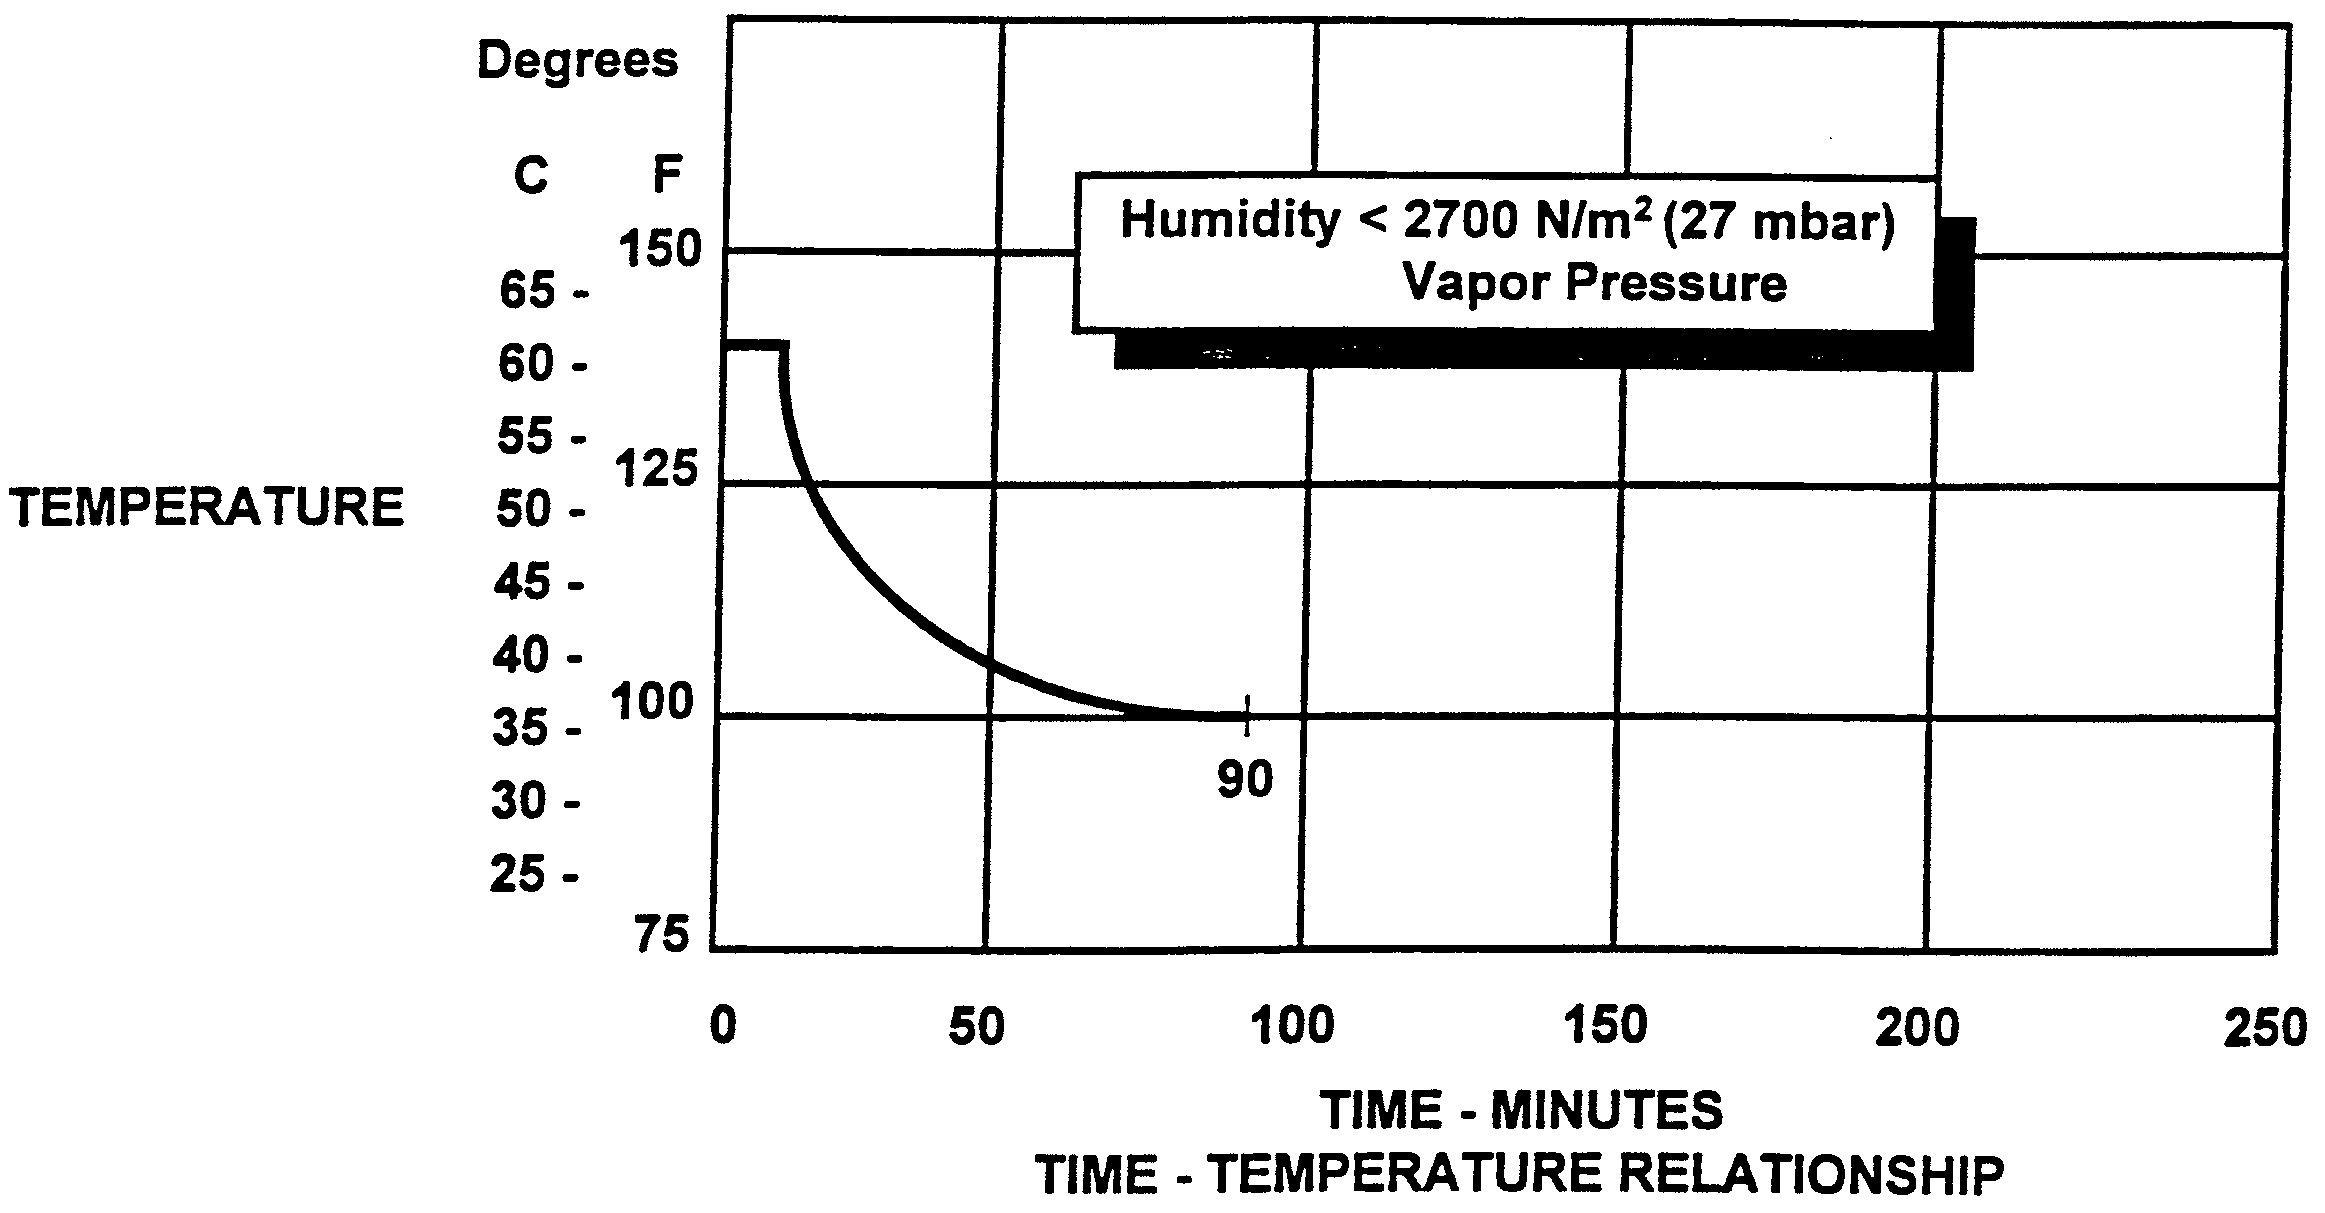 Graphic of (g) The exposure time at any given temperature must not exceed the values shown in the following graph after any improbable failure condition.